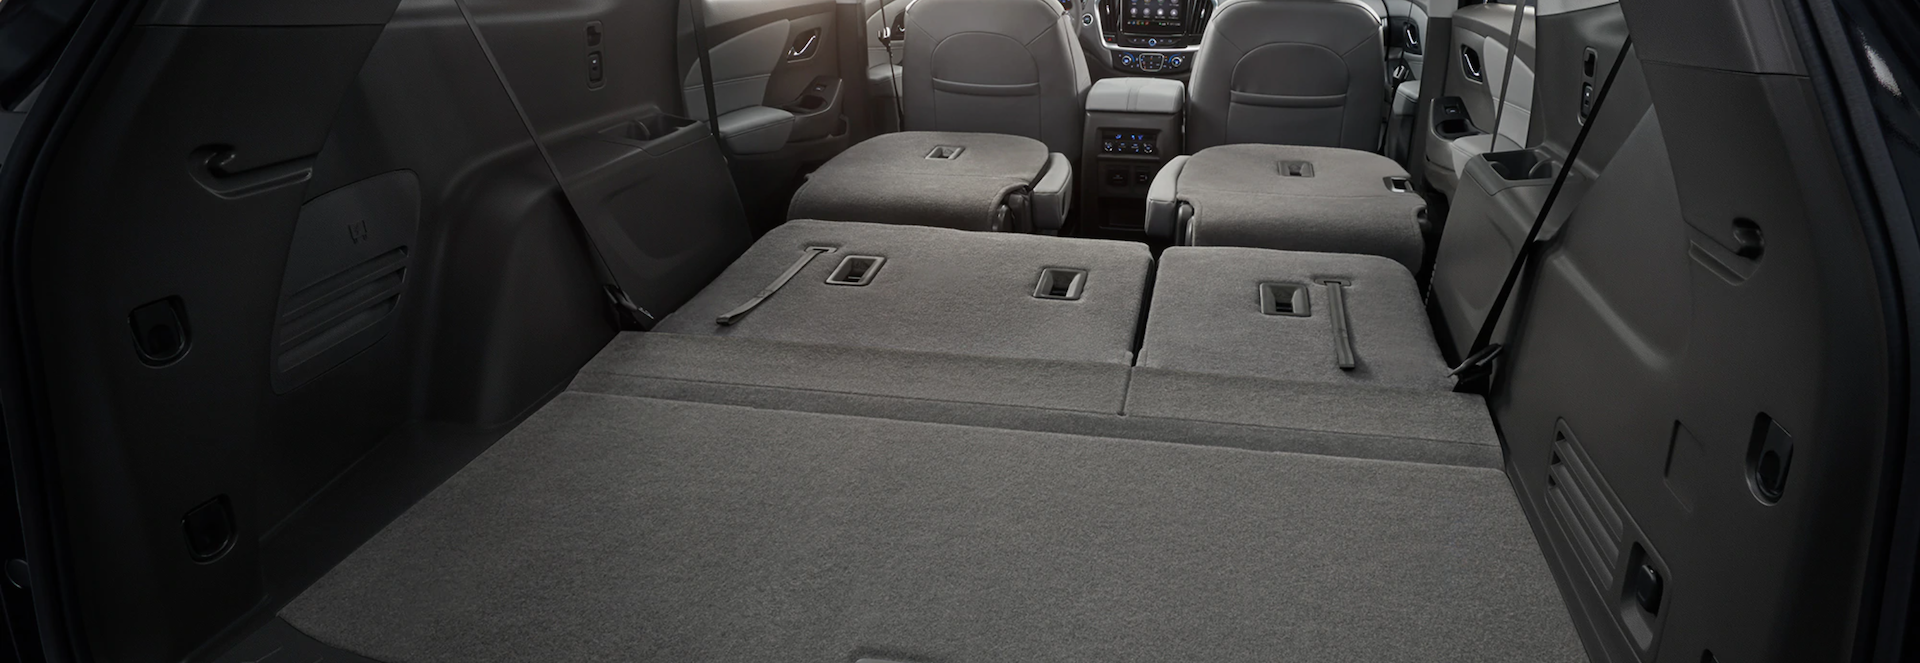 Fold down seats in the New Chevy Traverse SUV